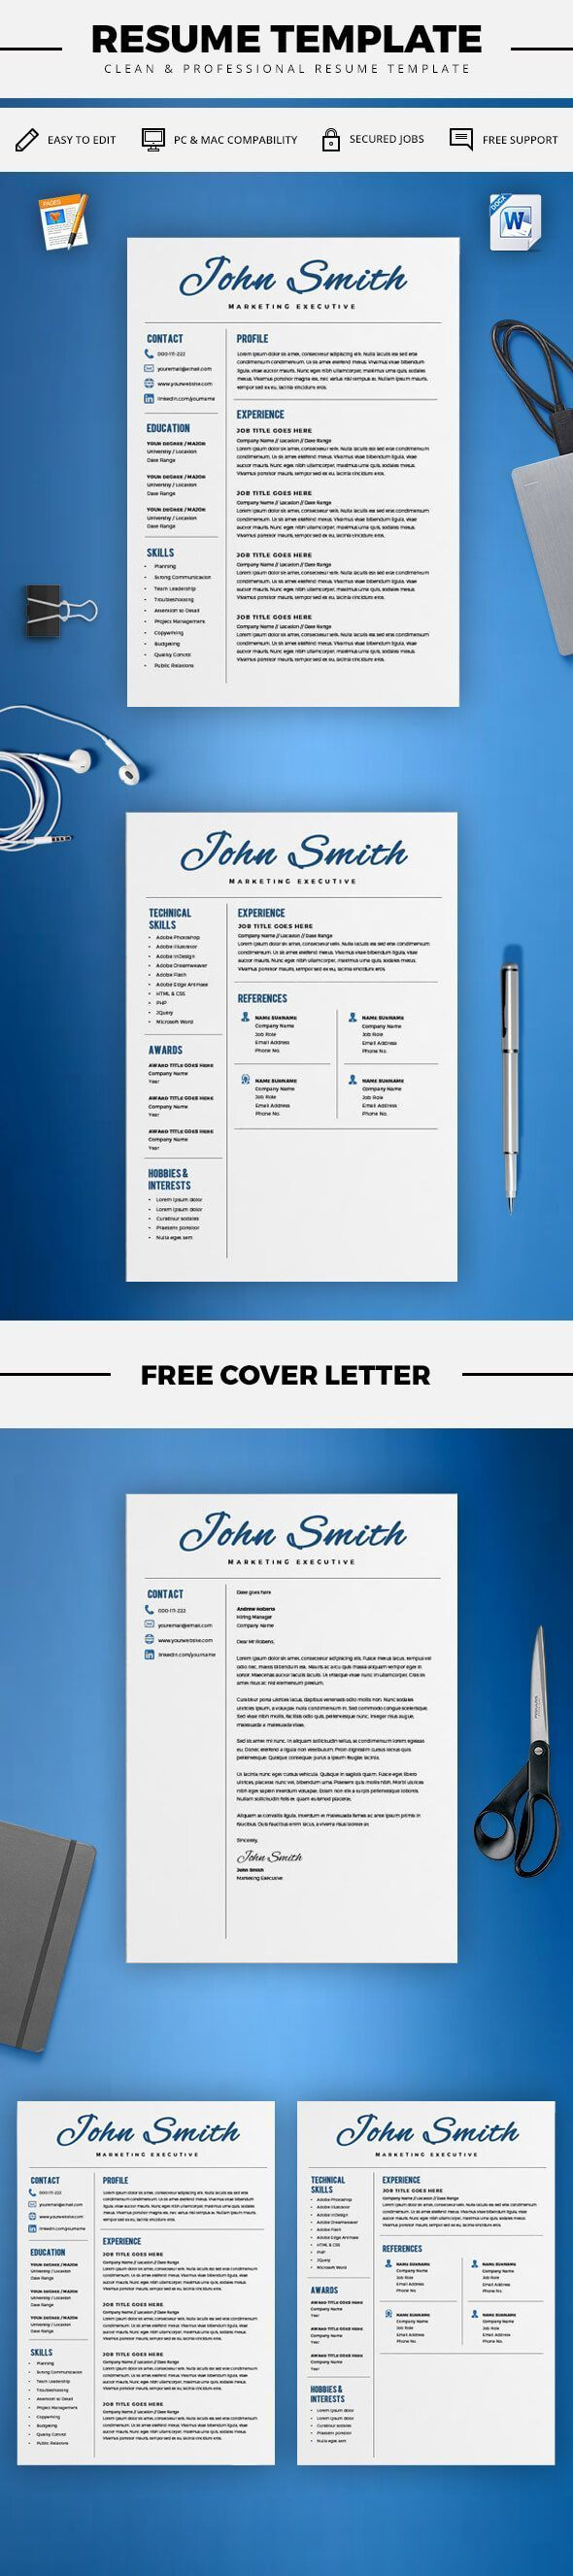 creative resume template cv template cover letter word and pages 2 page